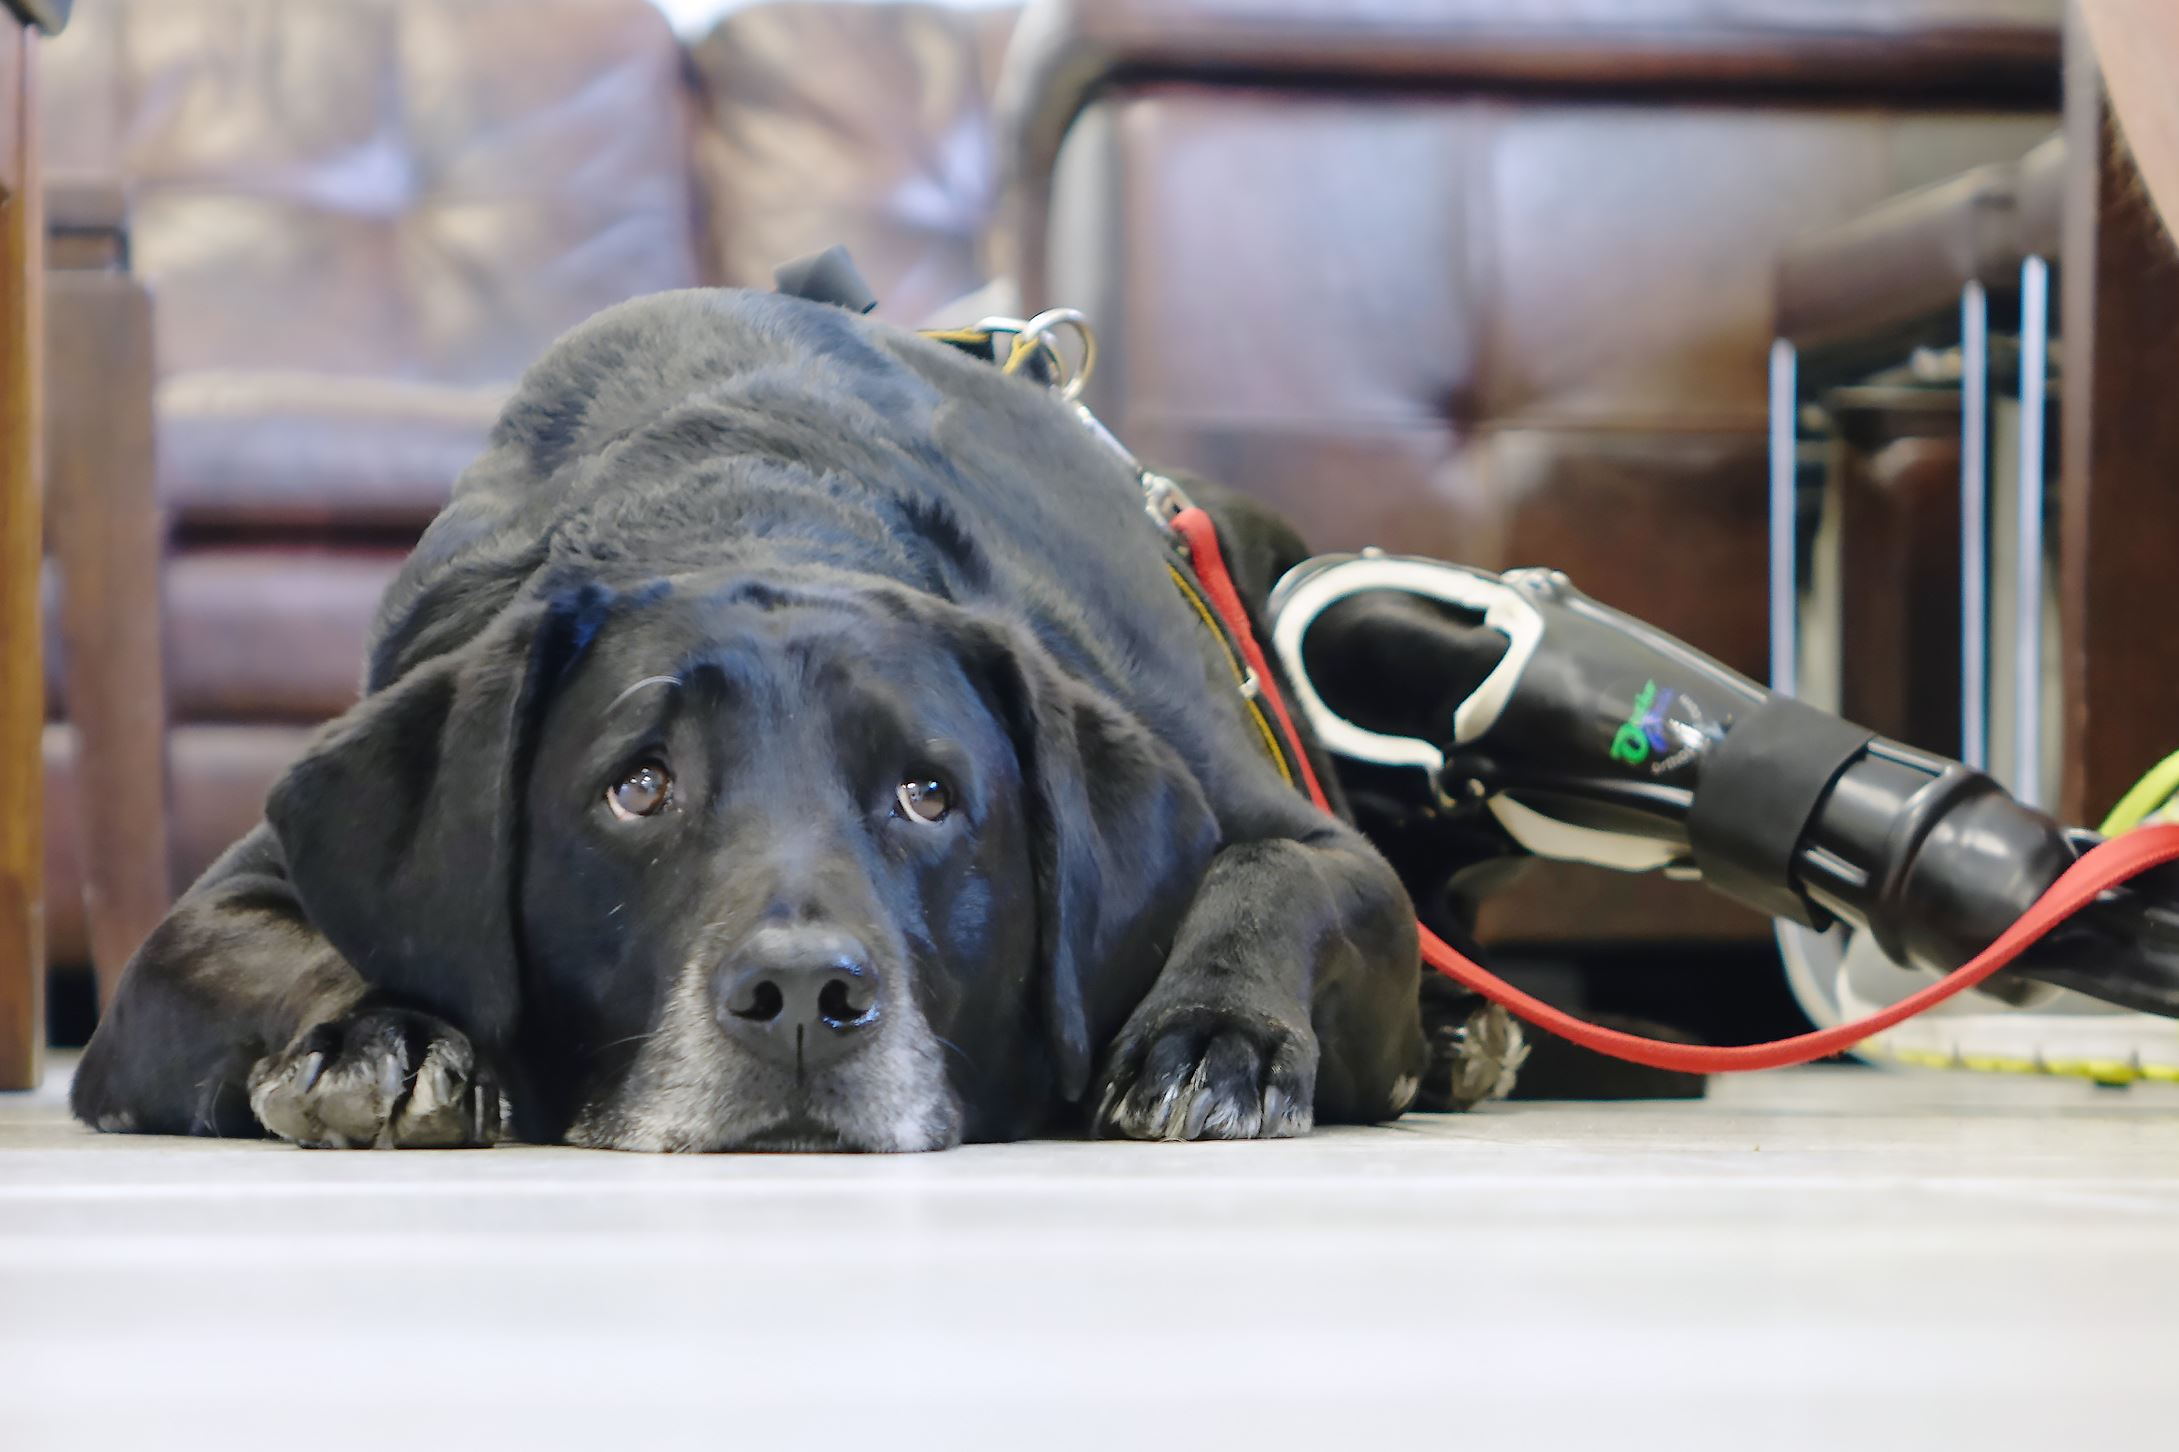 DOGSpROSTHETIC Maggie, an eight-year-old Labrador Retriver service dog, waits for a checkup on her prosthetic leg at Lauderdale Veterinary Specialists in Oakland Park, Fla.